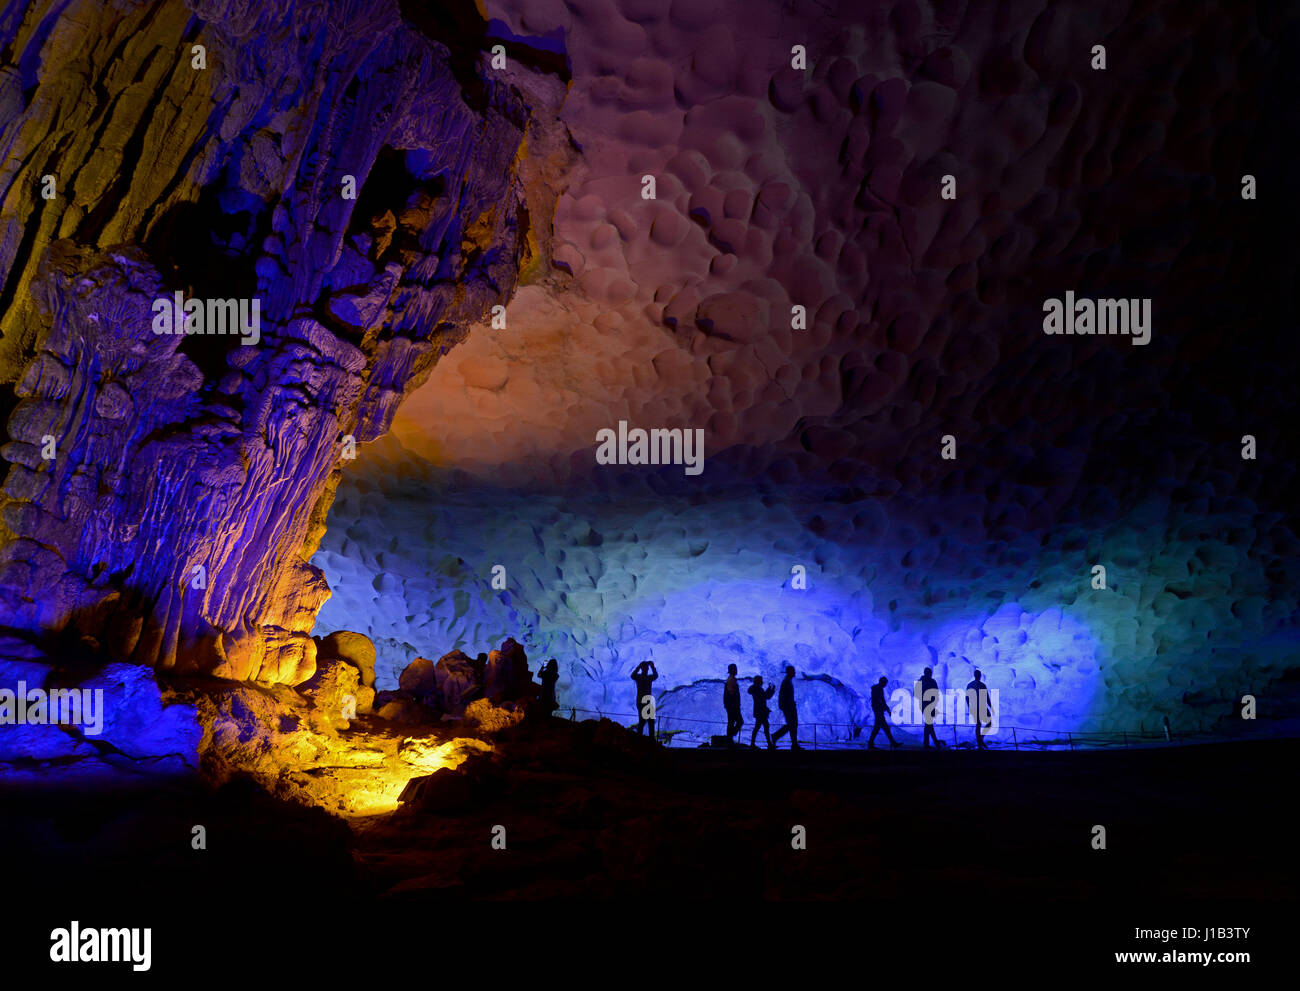 Silhouetted tourists visiting the the Sung Sot Caves (Amazing Cave) on Bo Hon Island in Halong Bay, Vietnam, which - Stock Image